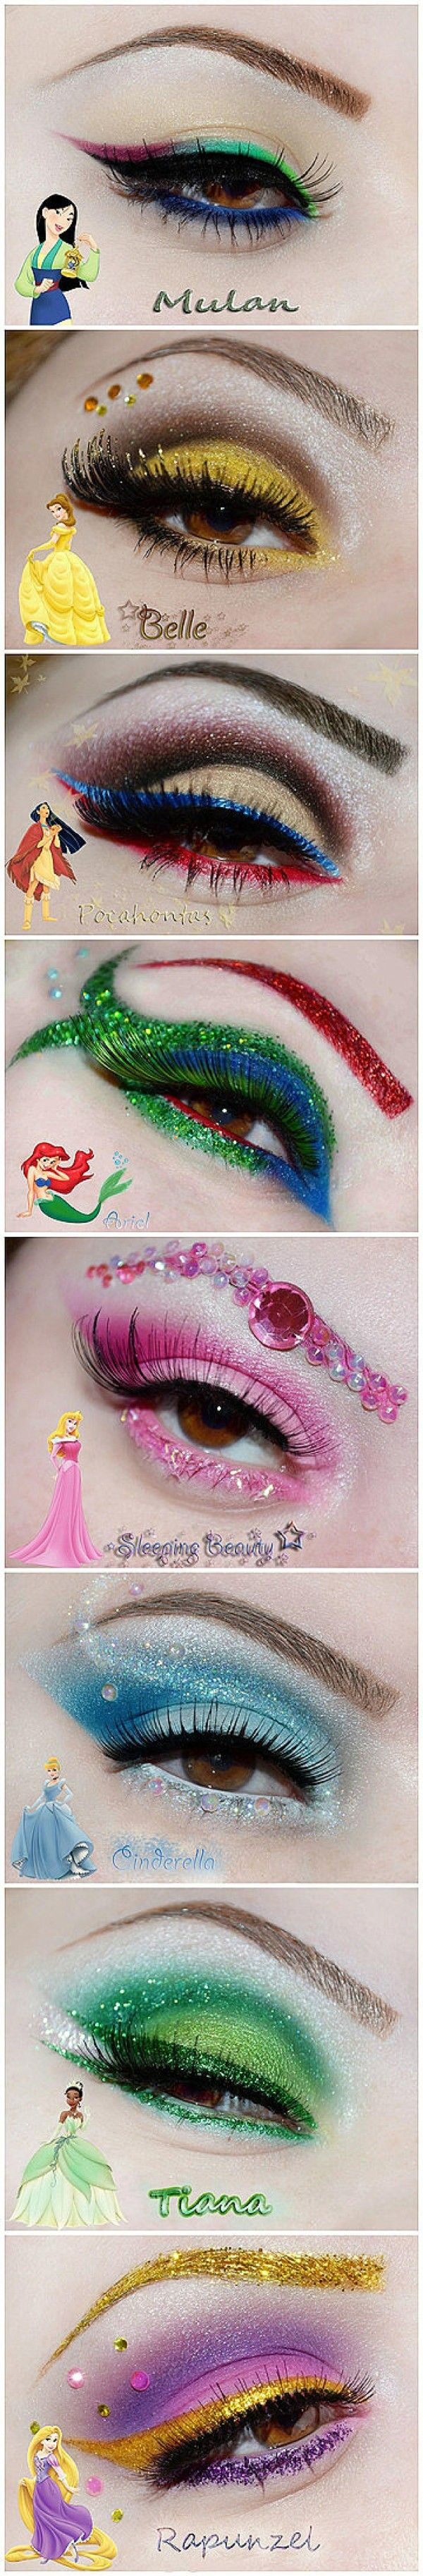 Makeup Inspired by Disney Princesses